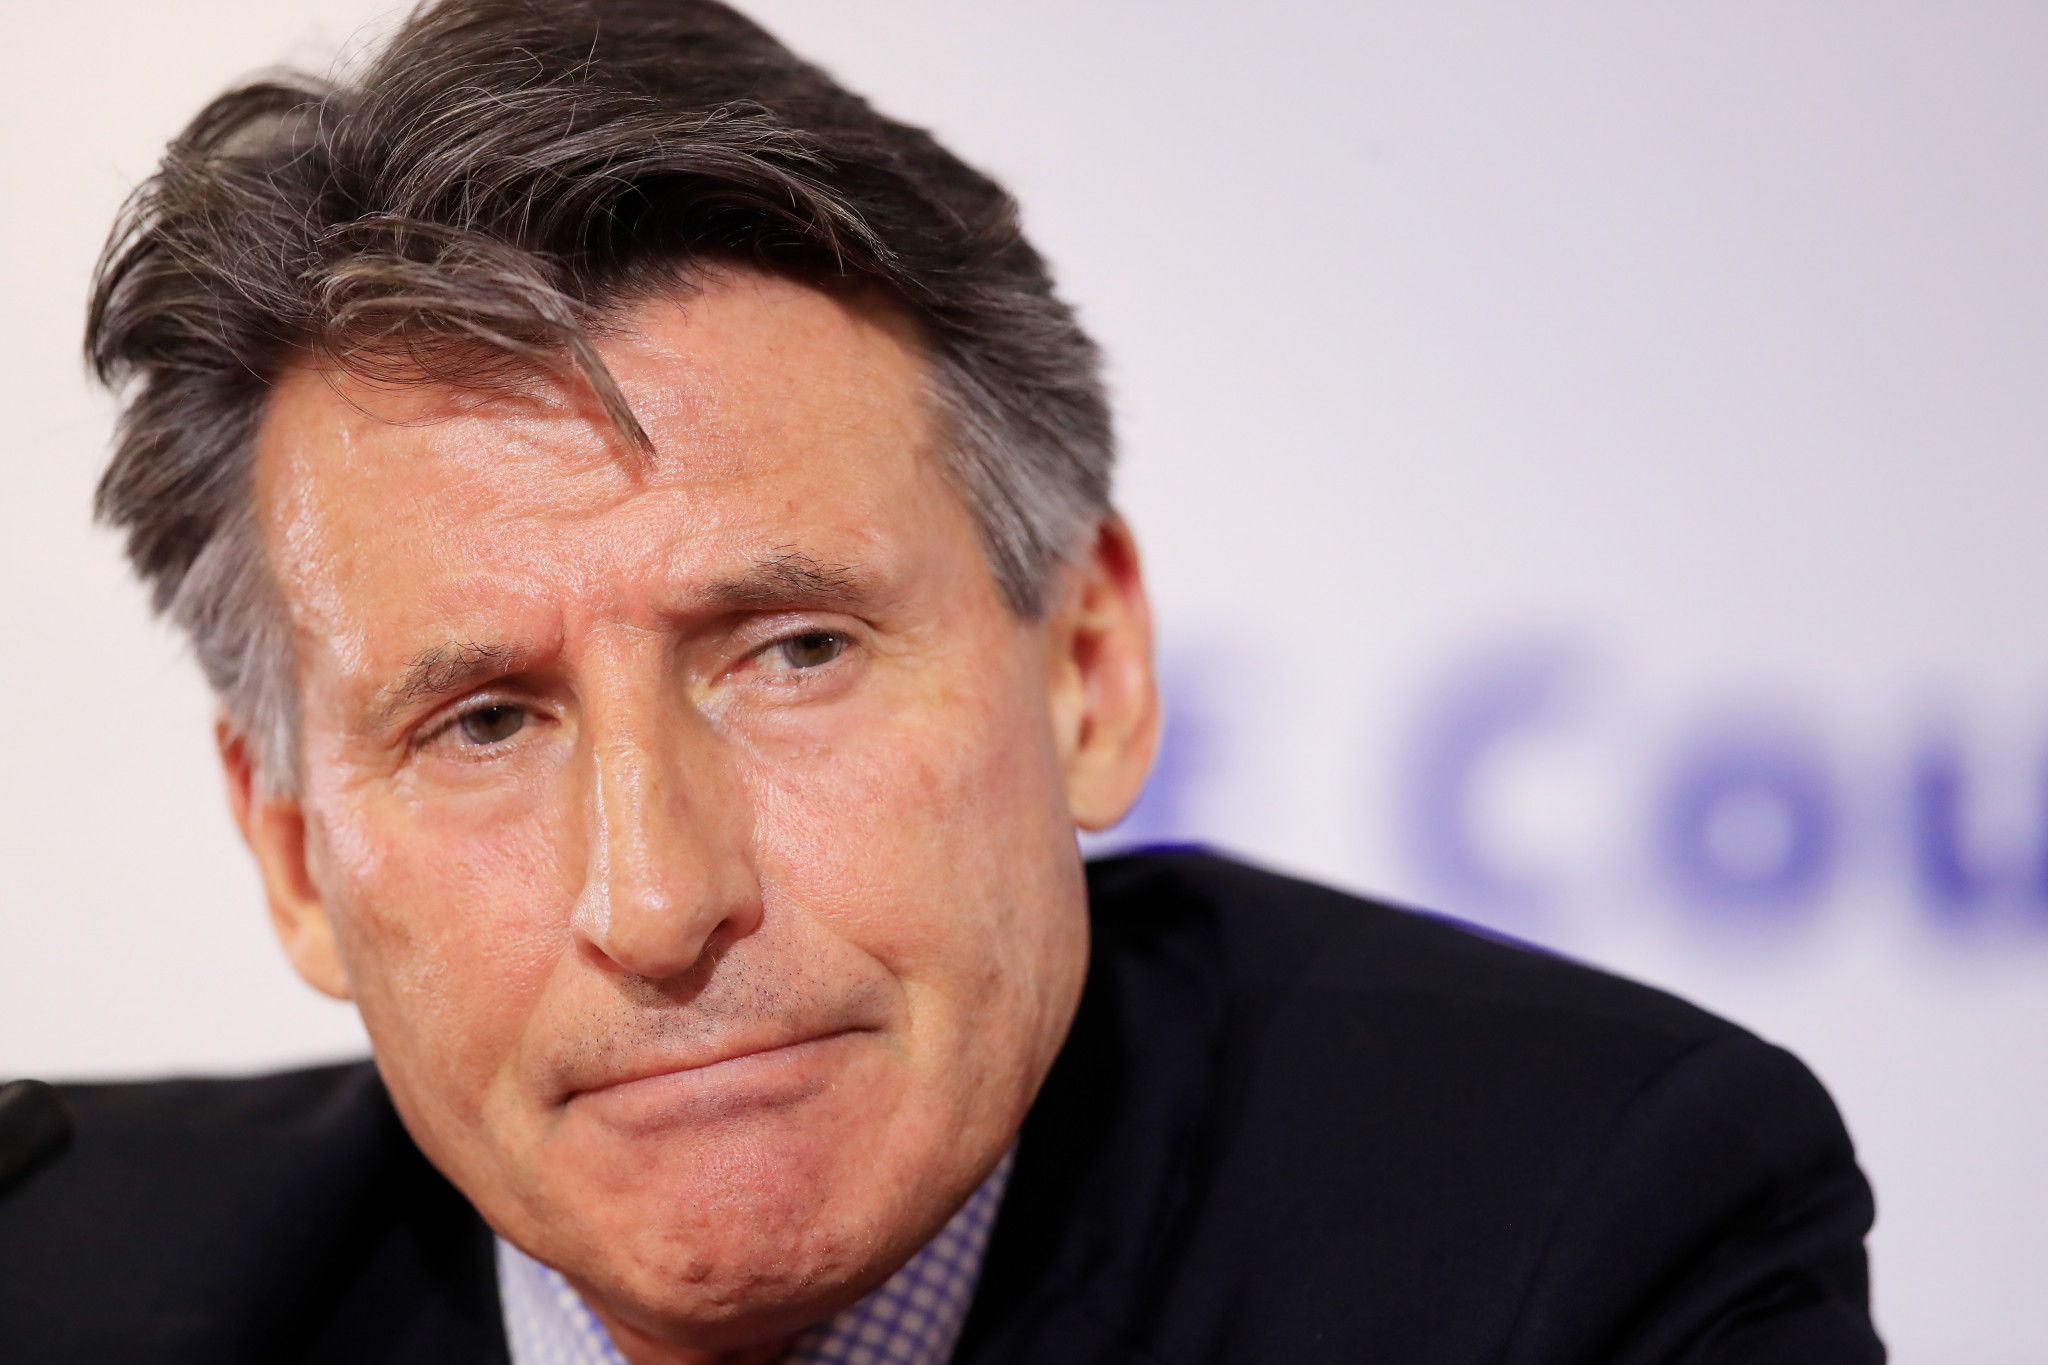 IAAF President Sebastian Coe seems set to be a member of the International Olympic Committee next year ©Getty Images